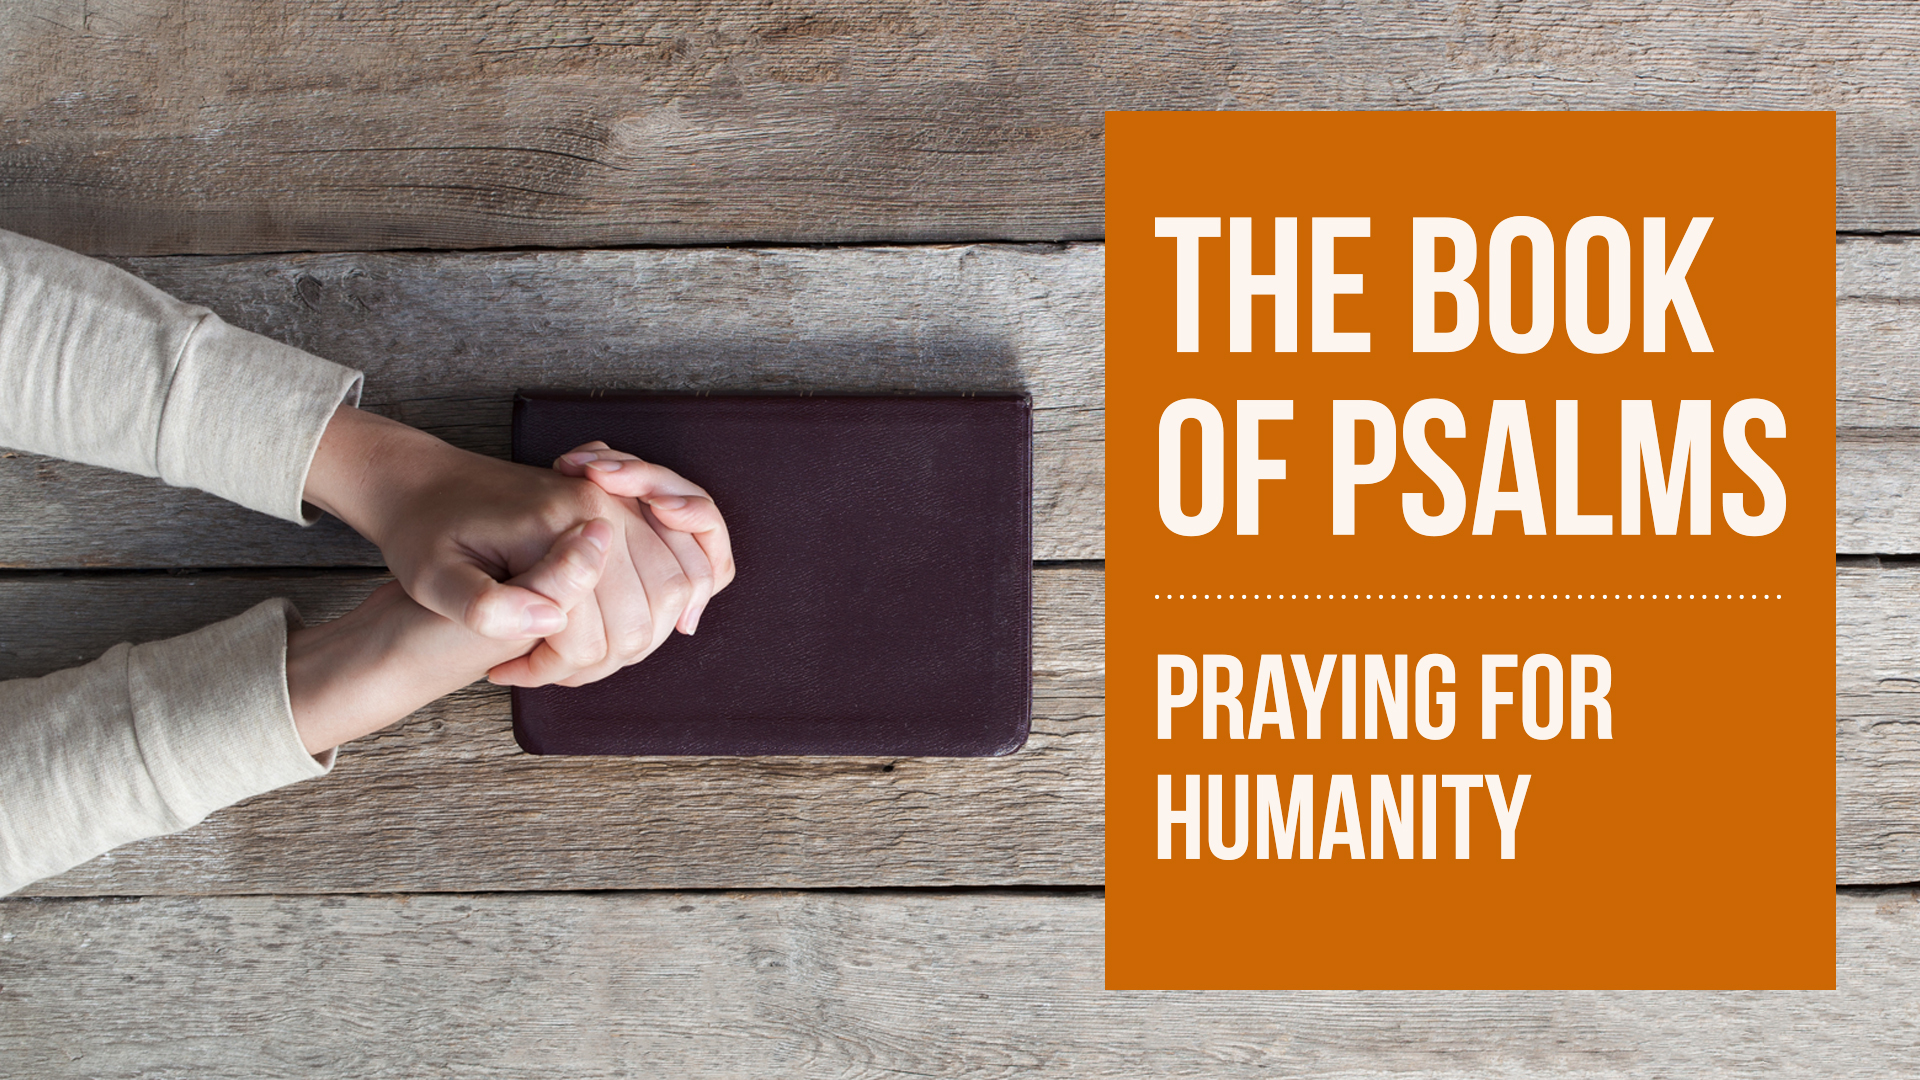 The Book of Psalms: Praying for Humanity